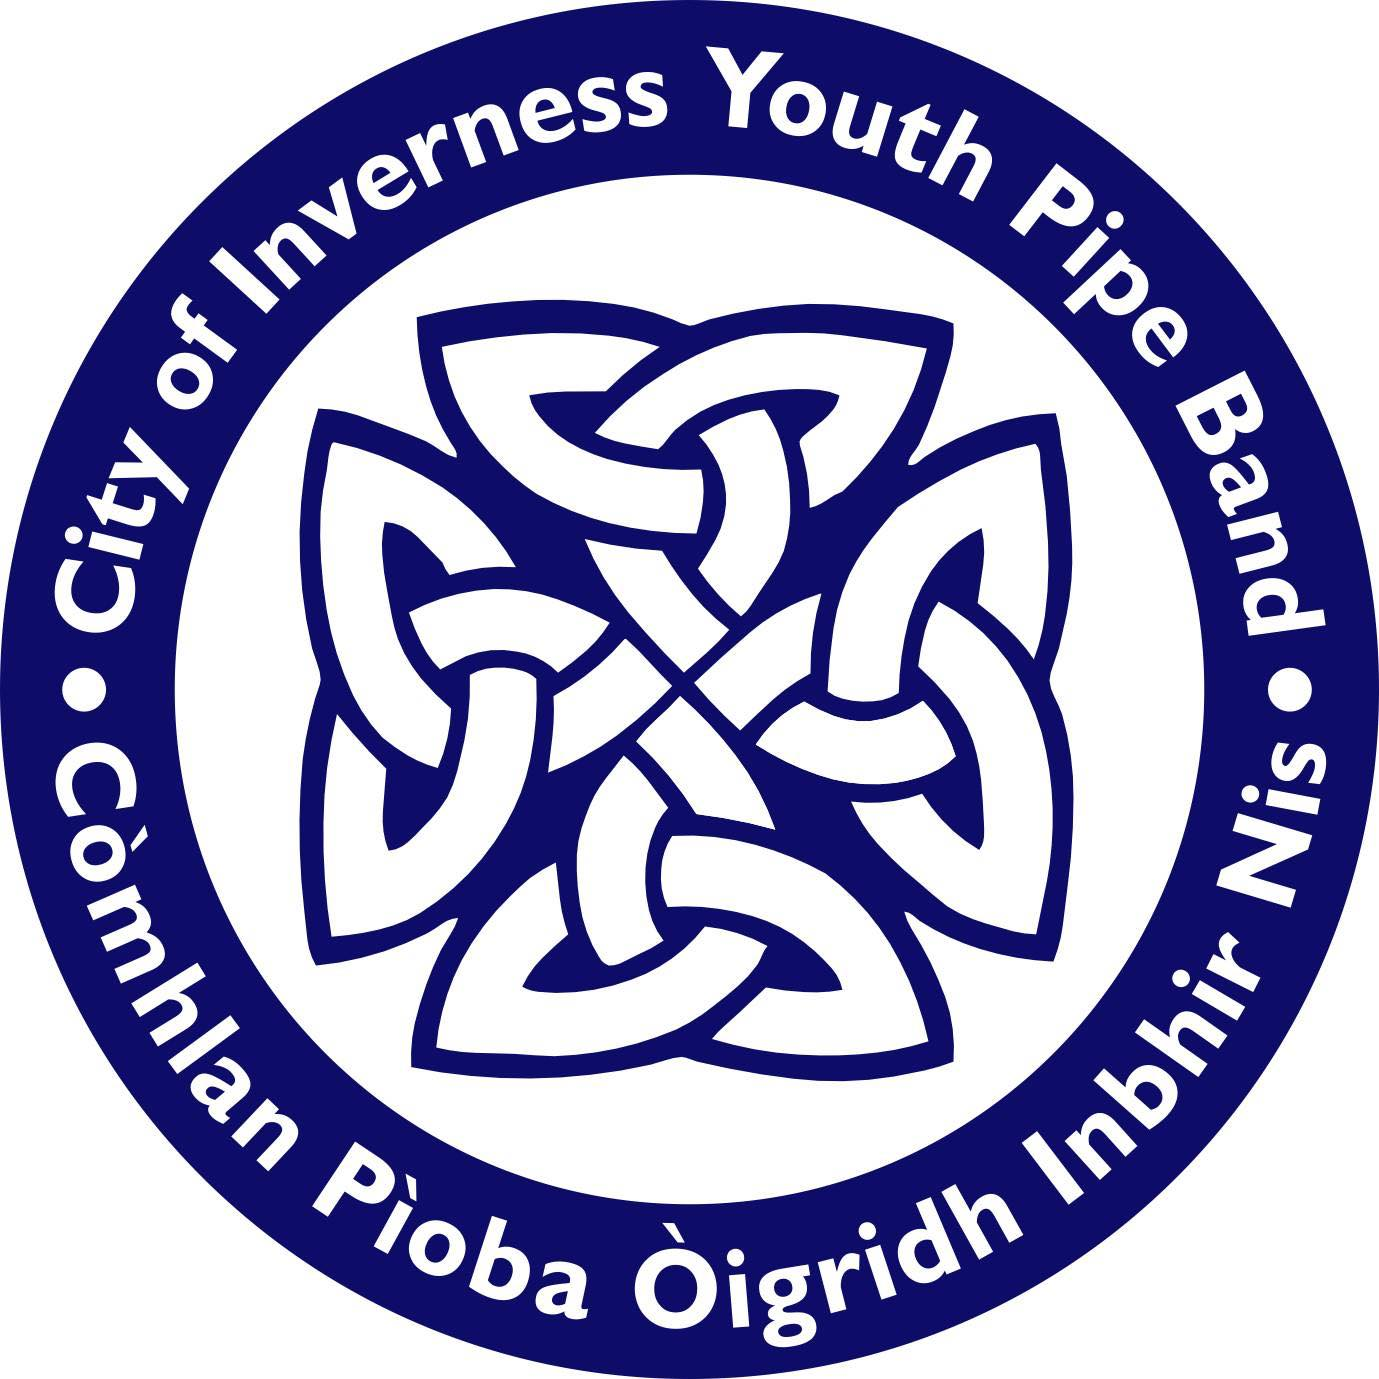 City of Inverness Youth Pipe Band Logo